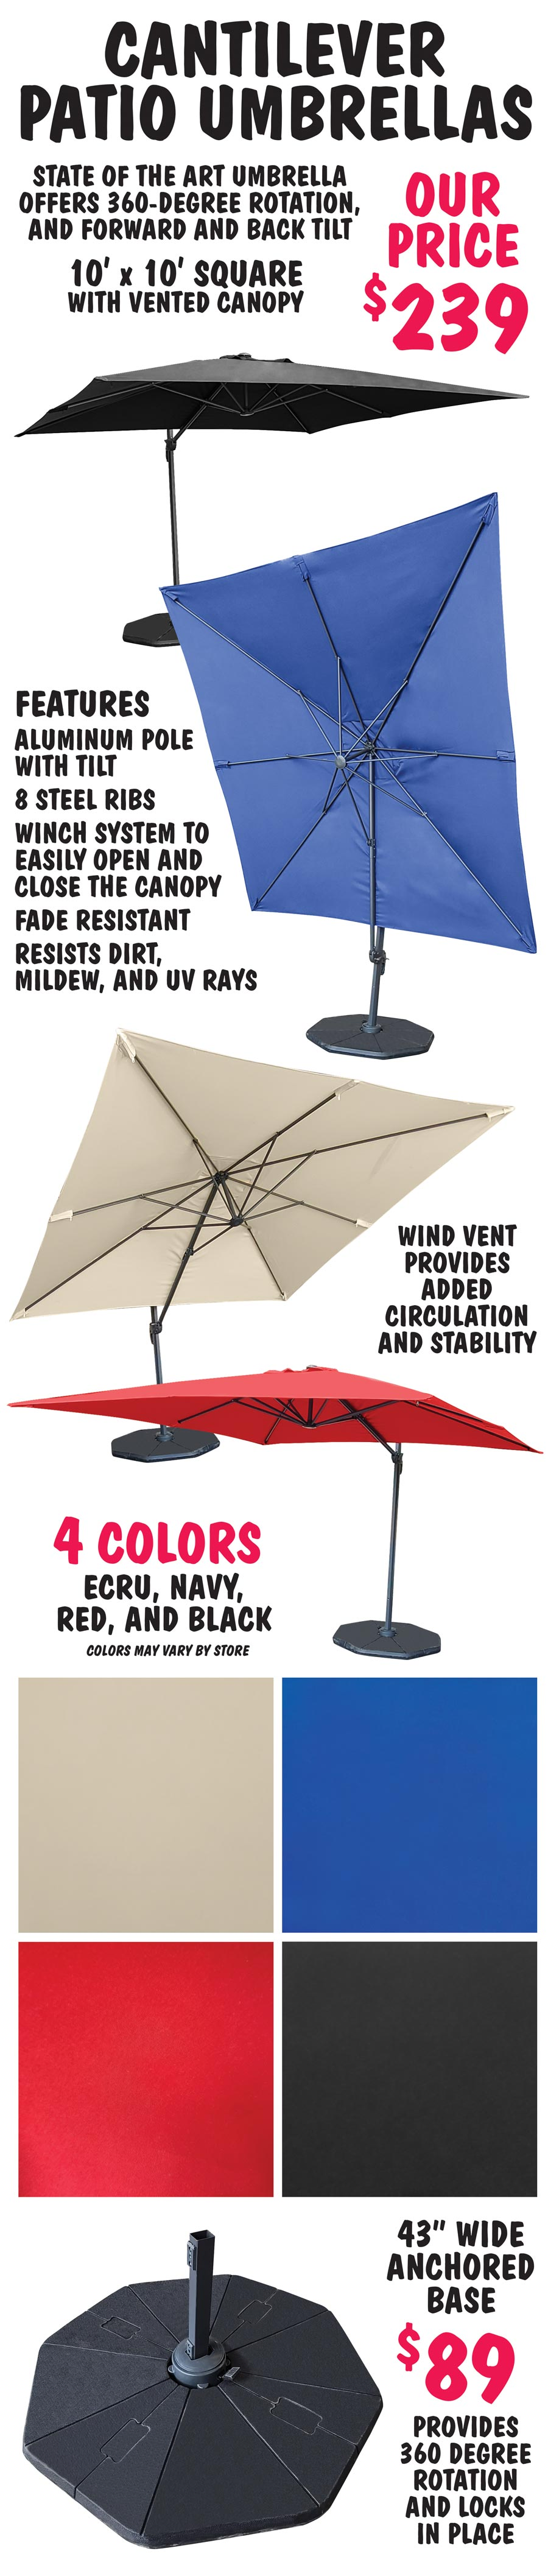 Cantilever Patio Umbrellas with 360 degree rotation and forward and back tilt, 9 and 3 quarters foot diameter square Our Price $239 - 4 colors Ecru, Navy, Red, and Black. 43 inch wide anchored base $89